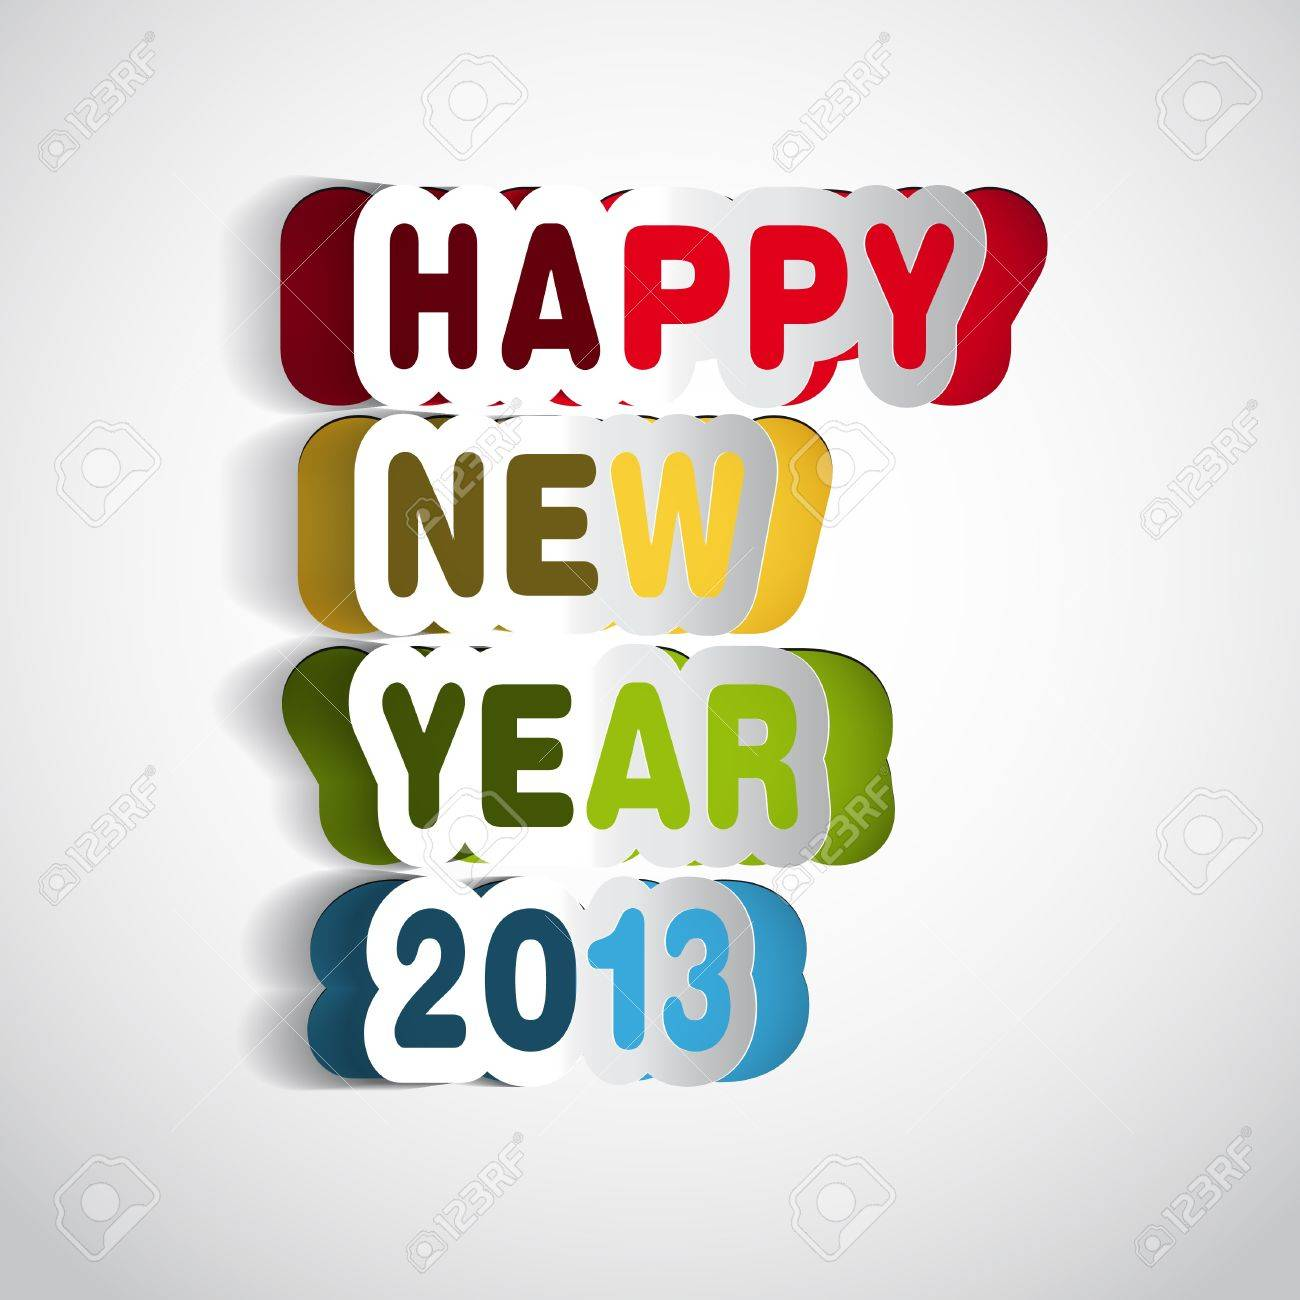 Happy new year 2013 ilustration Stock Vector - 16856029